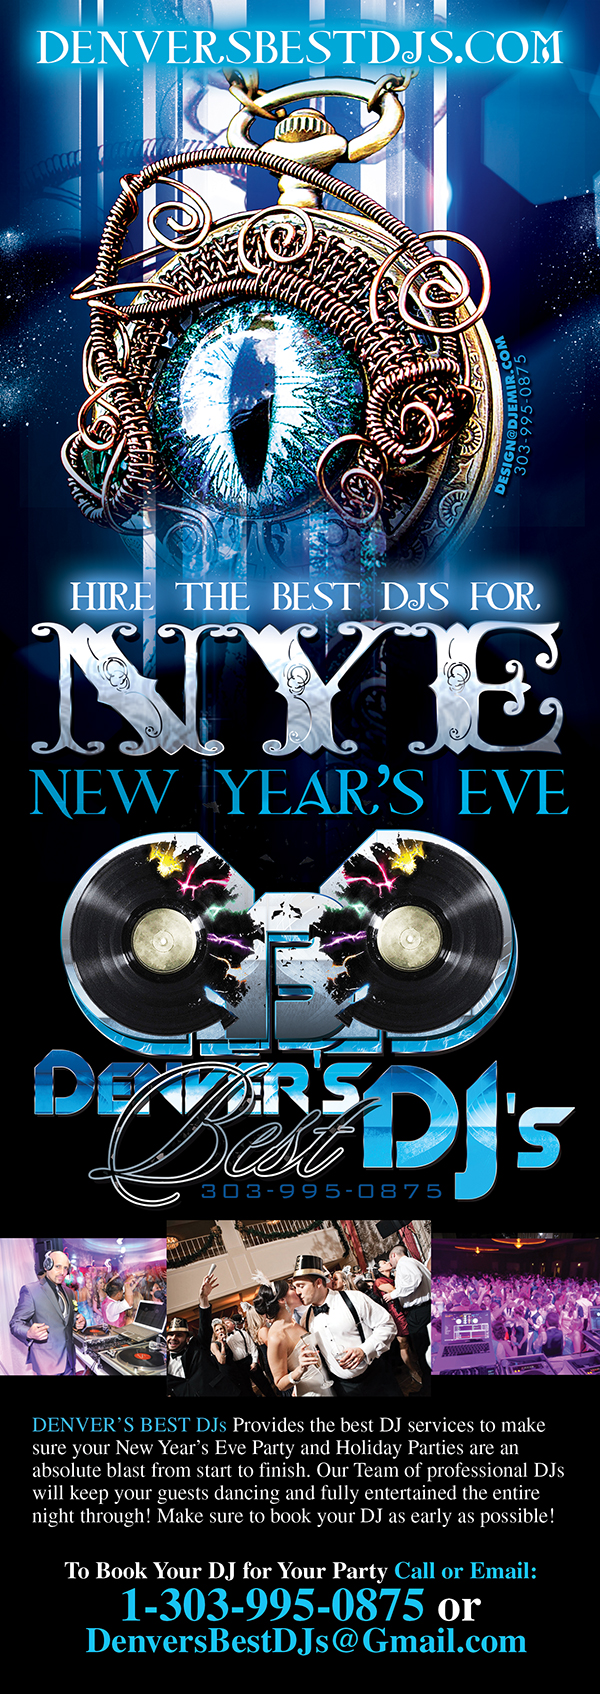 NYE DJs Denver's Best DJs For New Year's Eve and All Your Holiday Parties